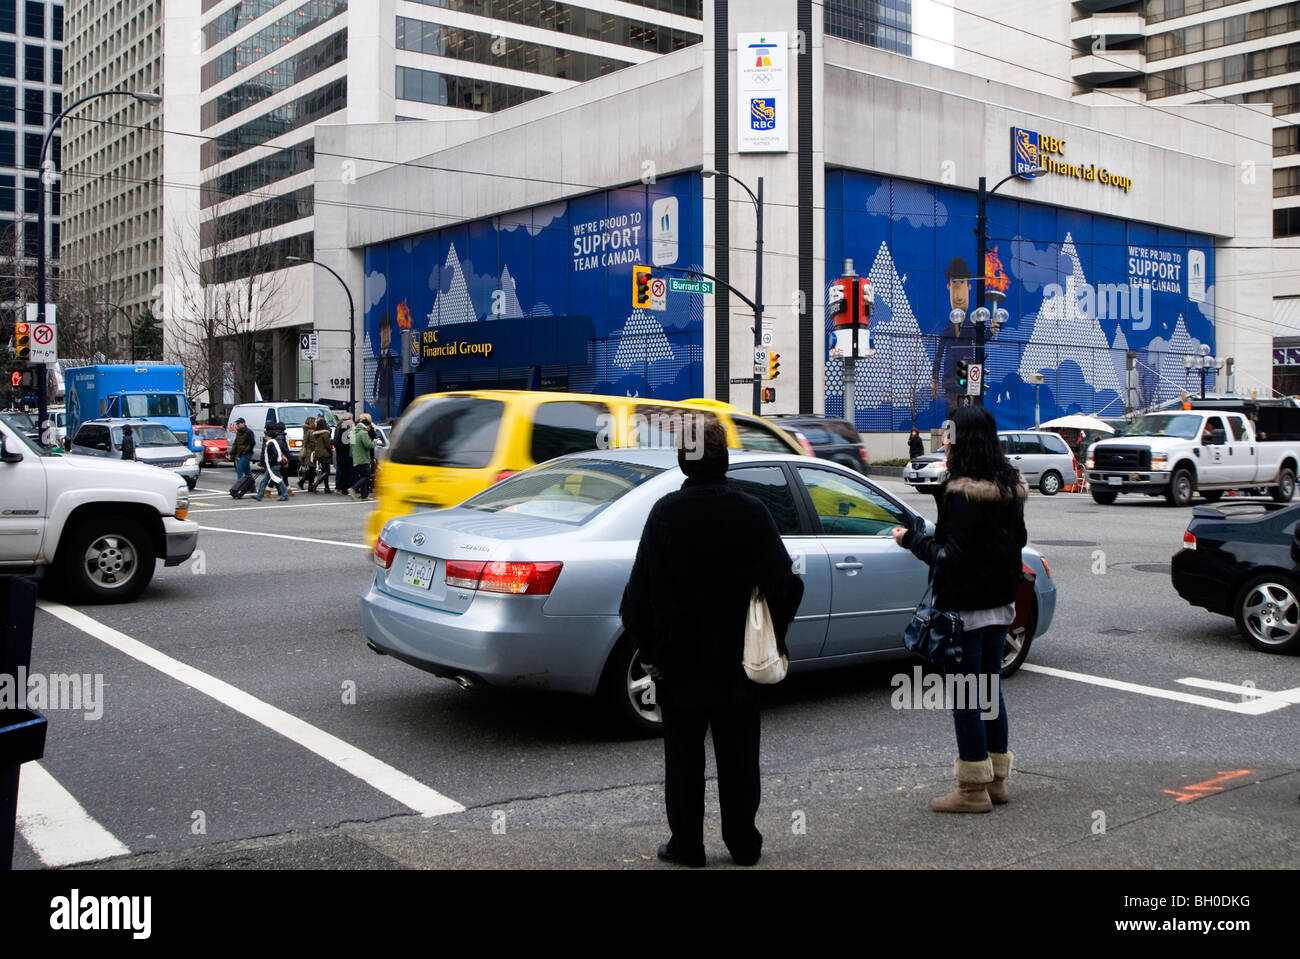 Corner of Burrard and Georgia St in Vancouver, looking at Royal Bank Tower, getting wrapped in giant banner for - Stock Image